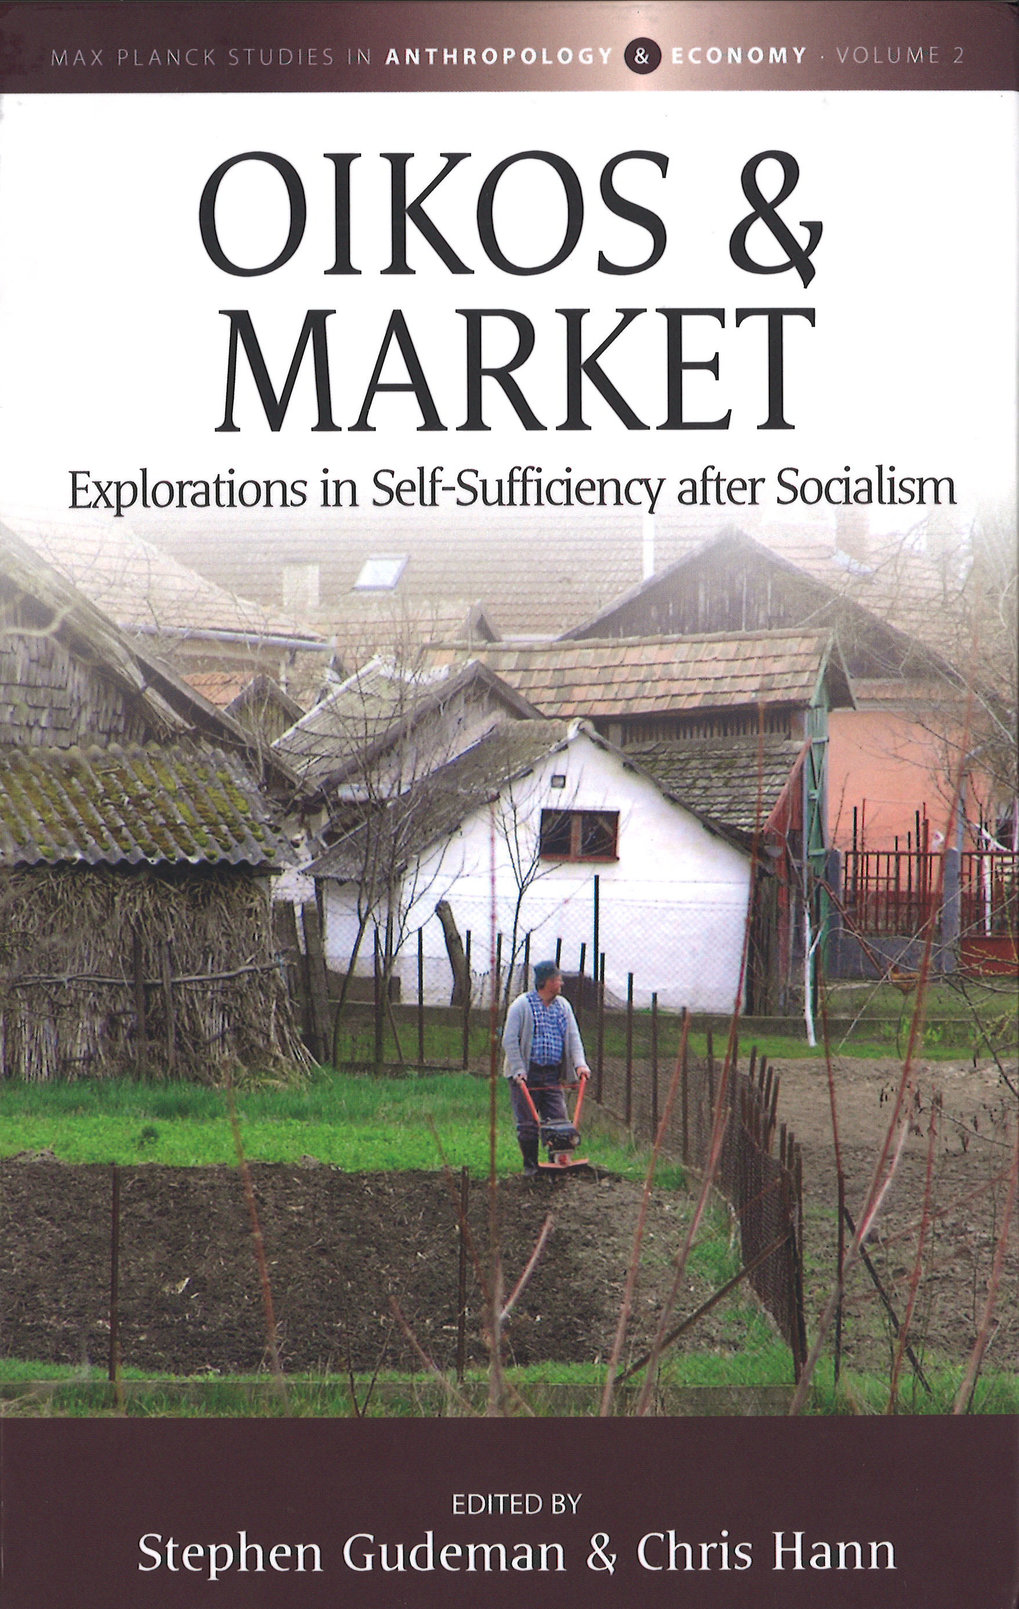 Oikos and Market. Explorations in Self-Sufficiency after Socialism